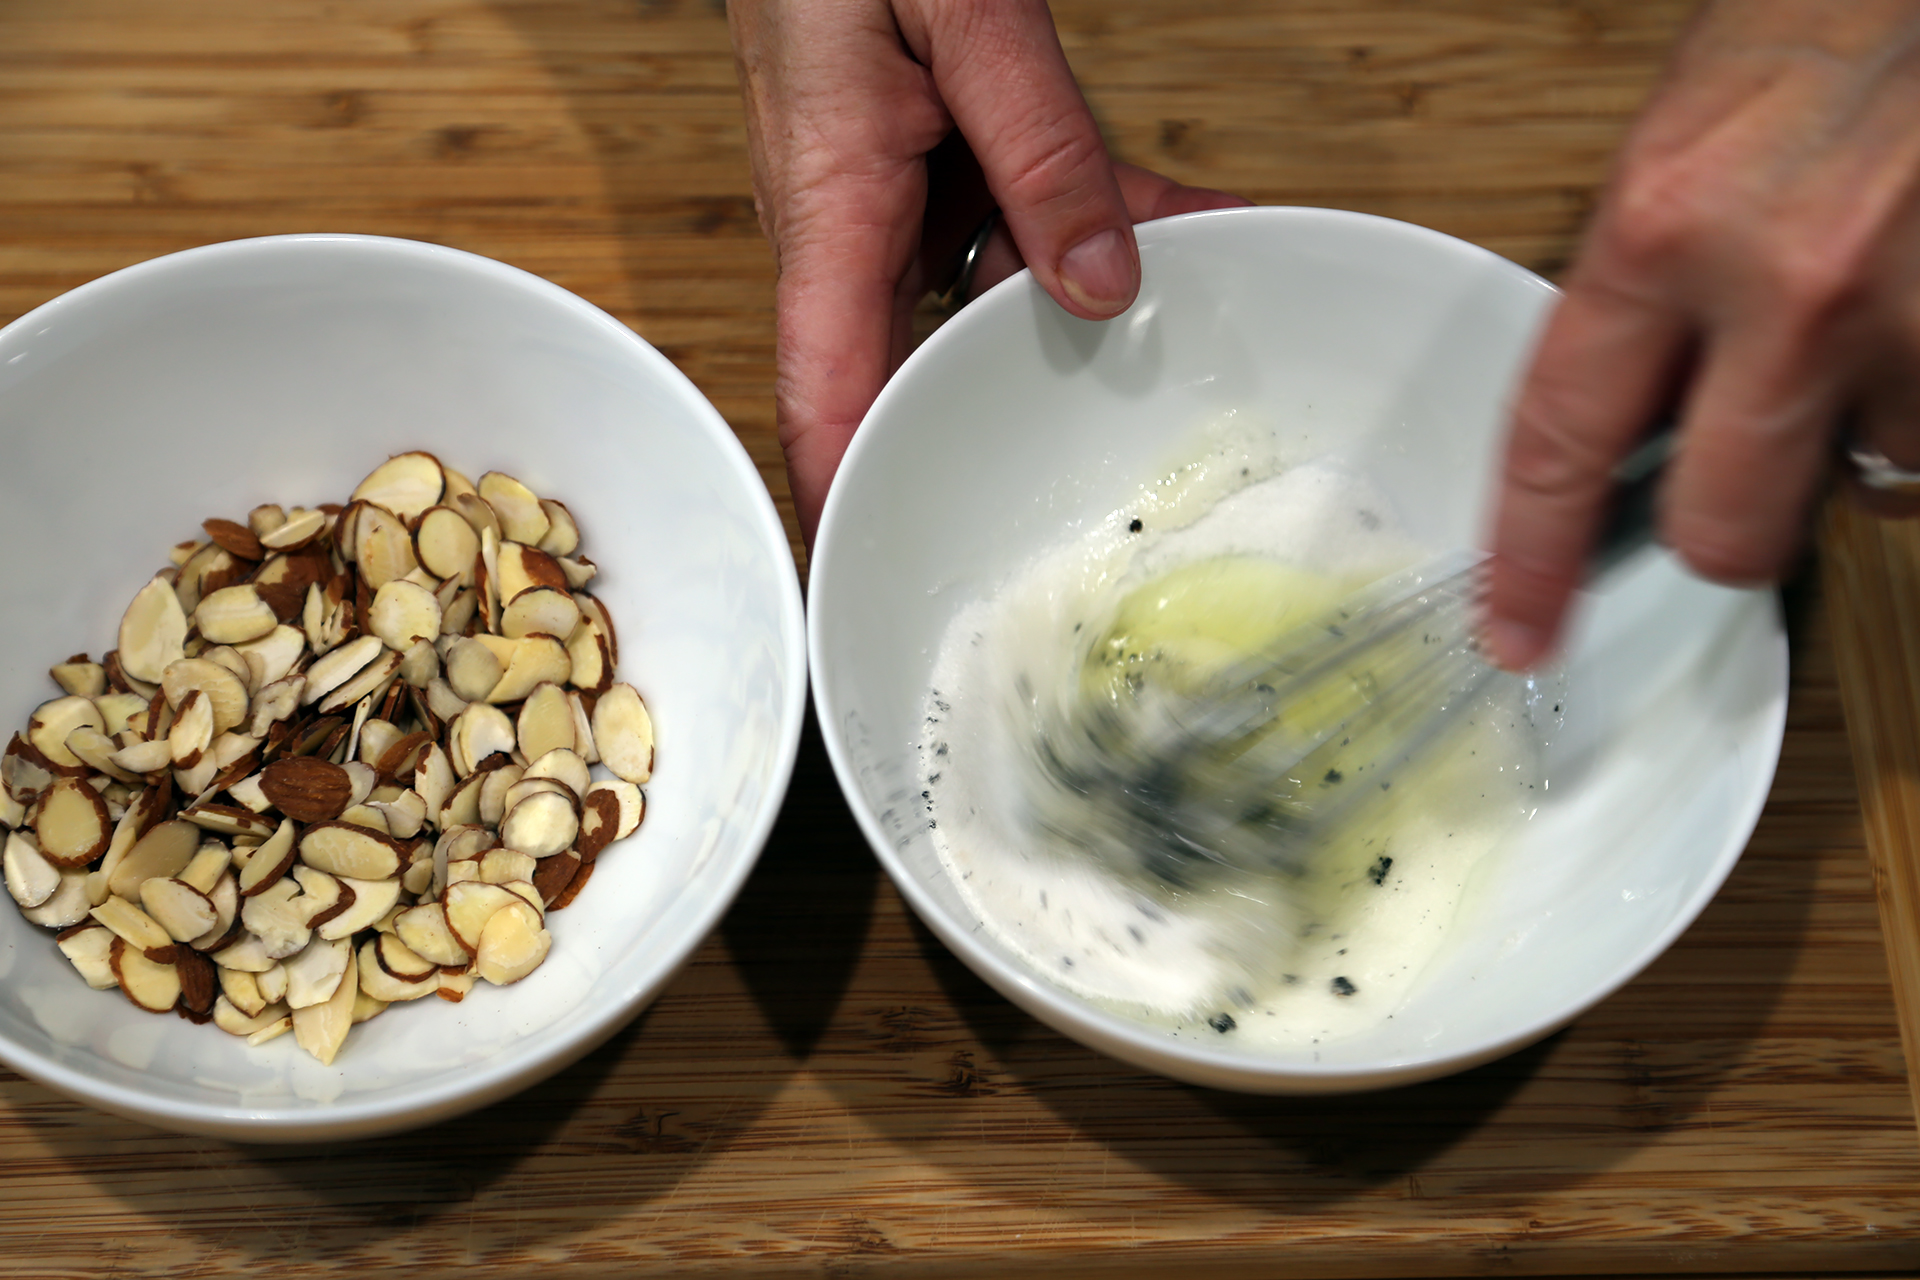 To make the almond crackle, add the egg white, sugar, and salt to the bowl with the vanilla bean seeds and whisk just until frothy (you aren't actually whipping the whites, you are simply breaking them up) and the vanilla seeds are evenly dispersed.